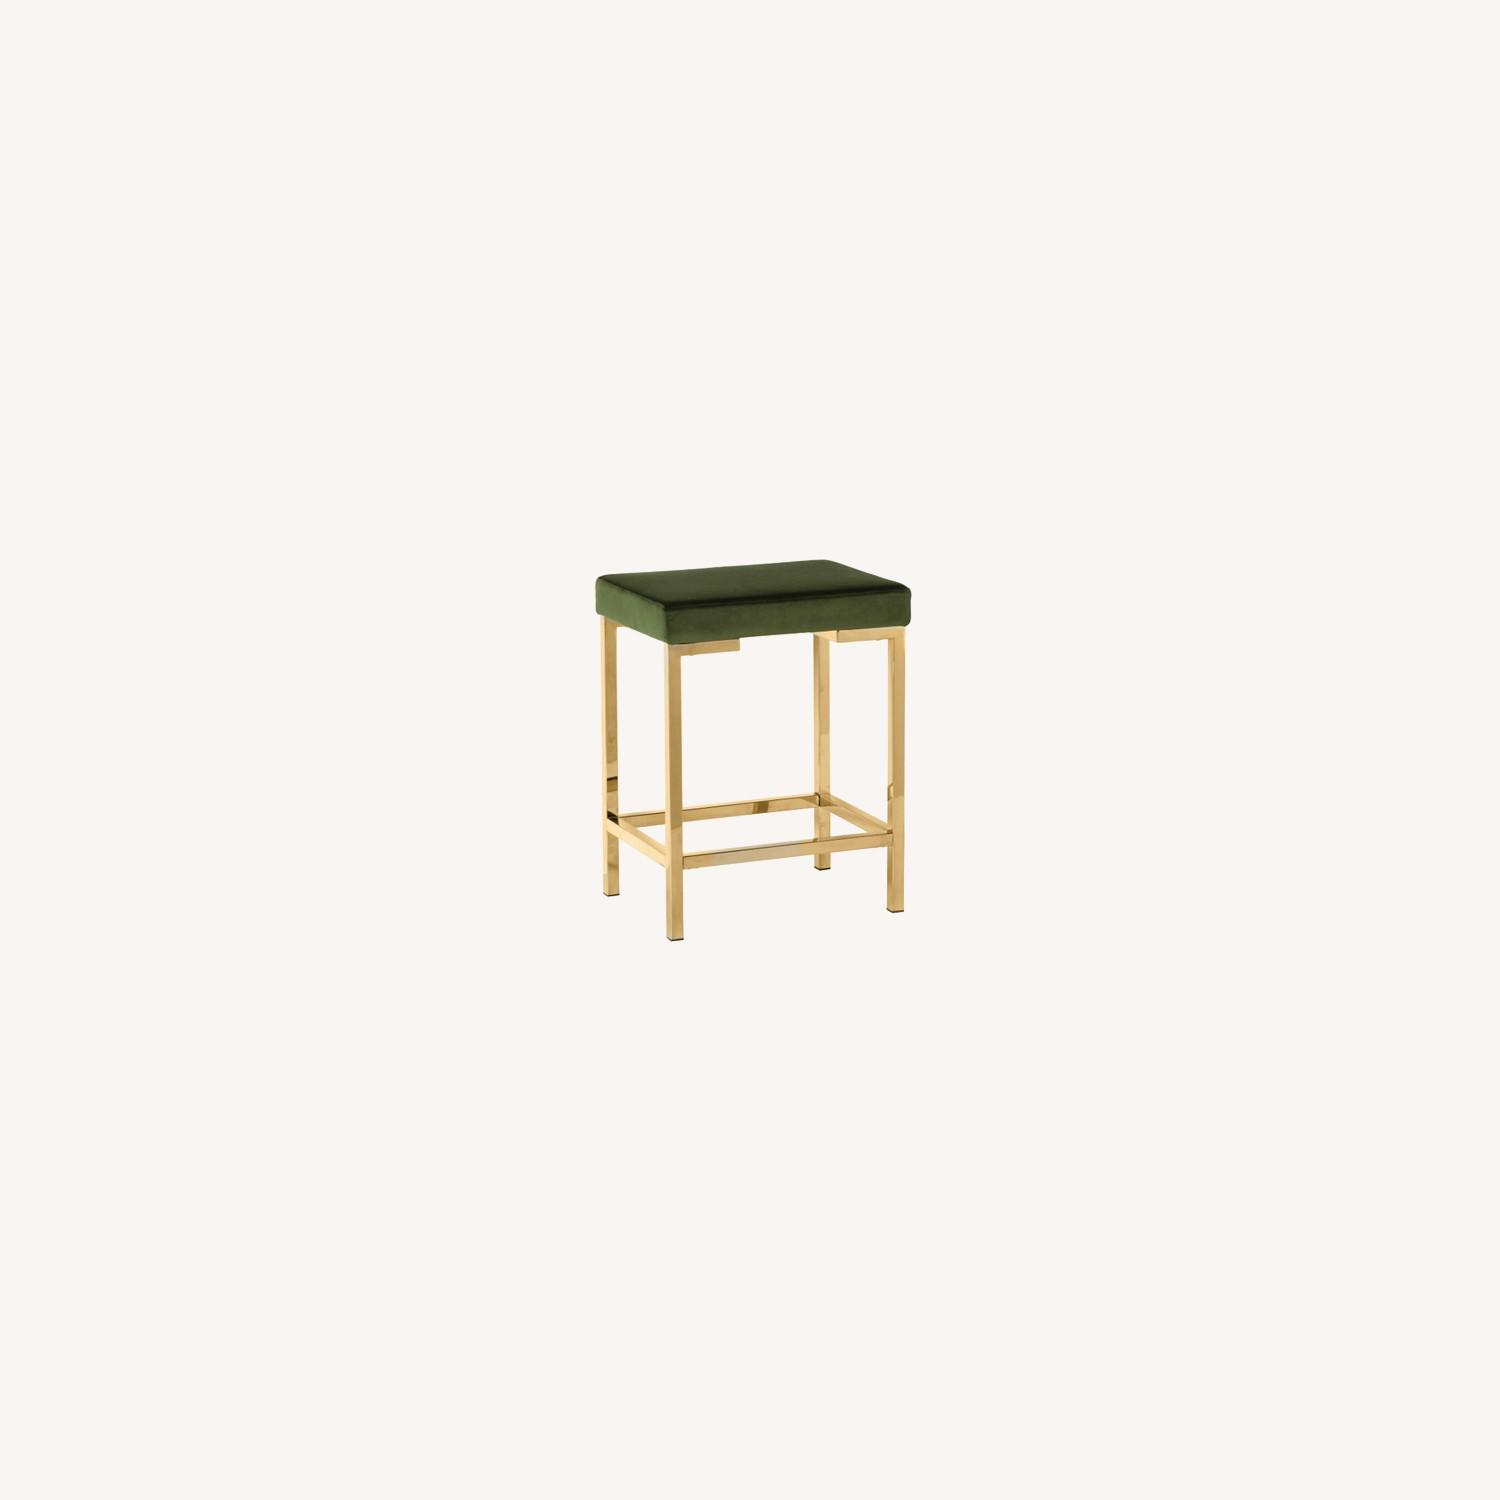 Minimalist Counter Height Stool In Green Fabric - image-3